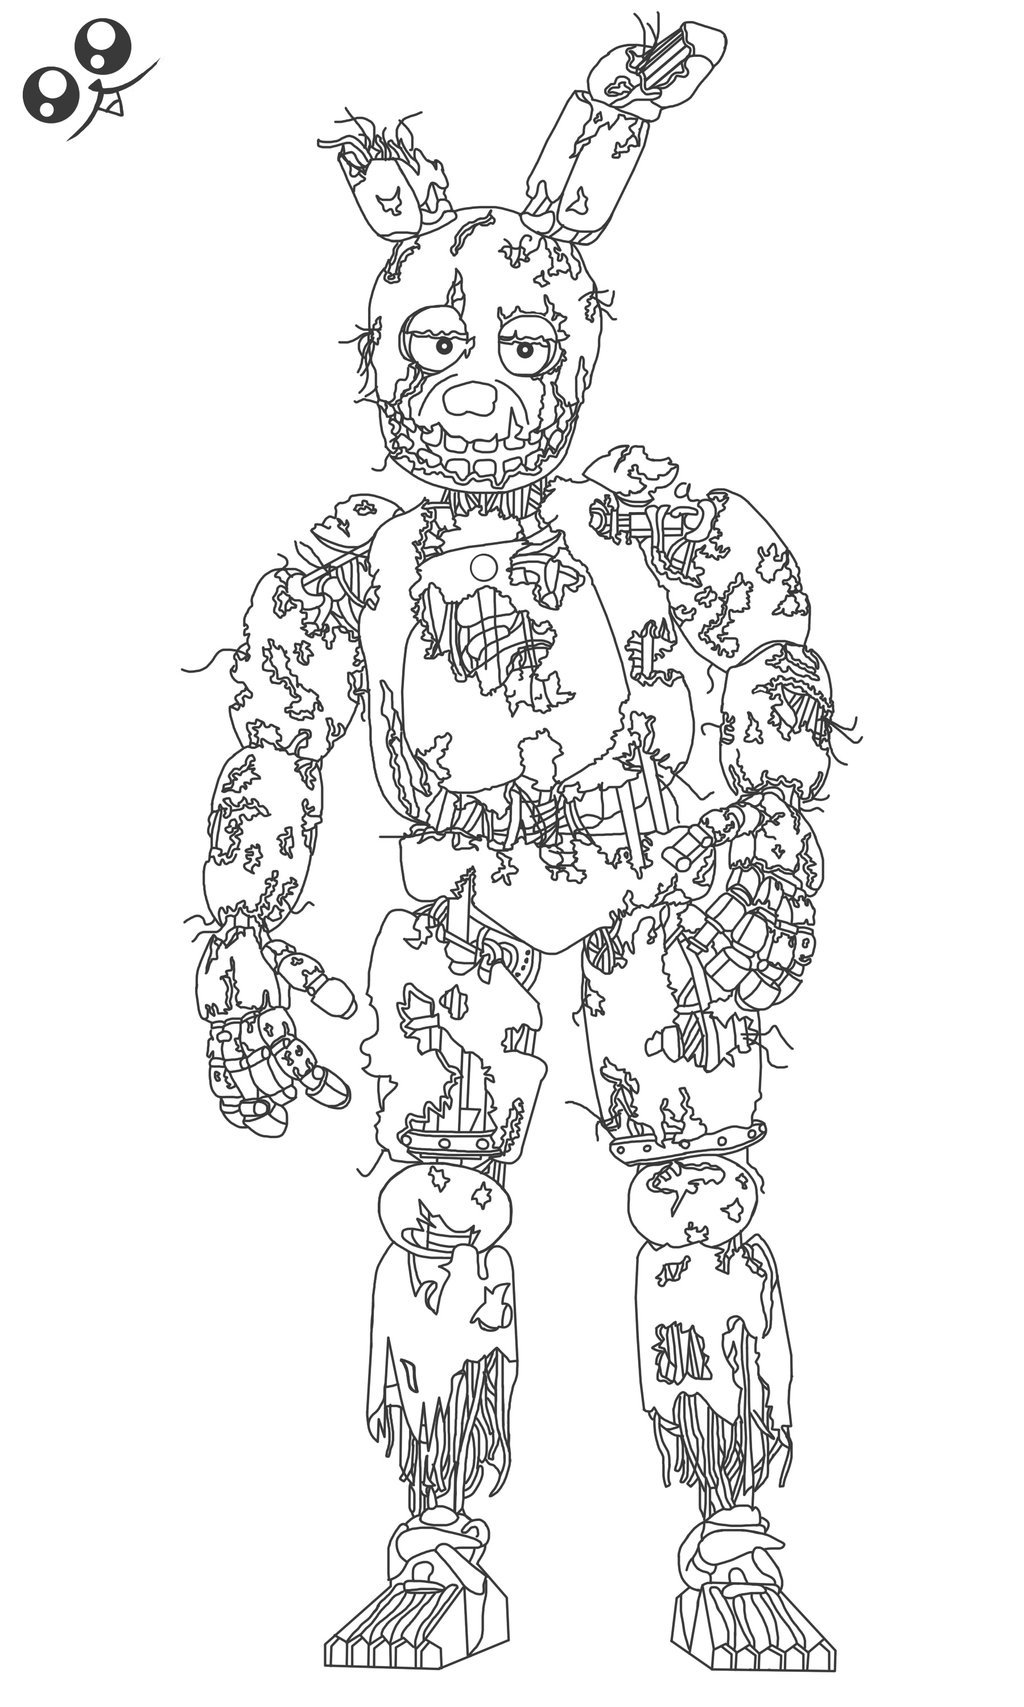 "Fnaf 9 Springtrap Colouring Pages Search Results greencheese"" — card ..."